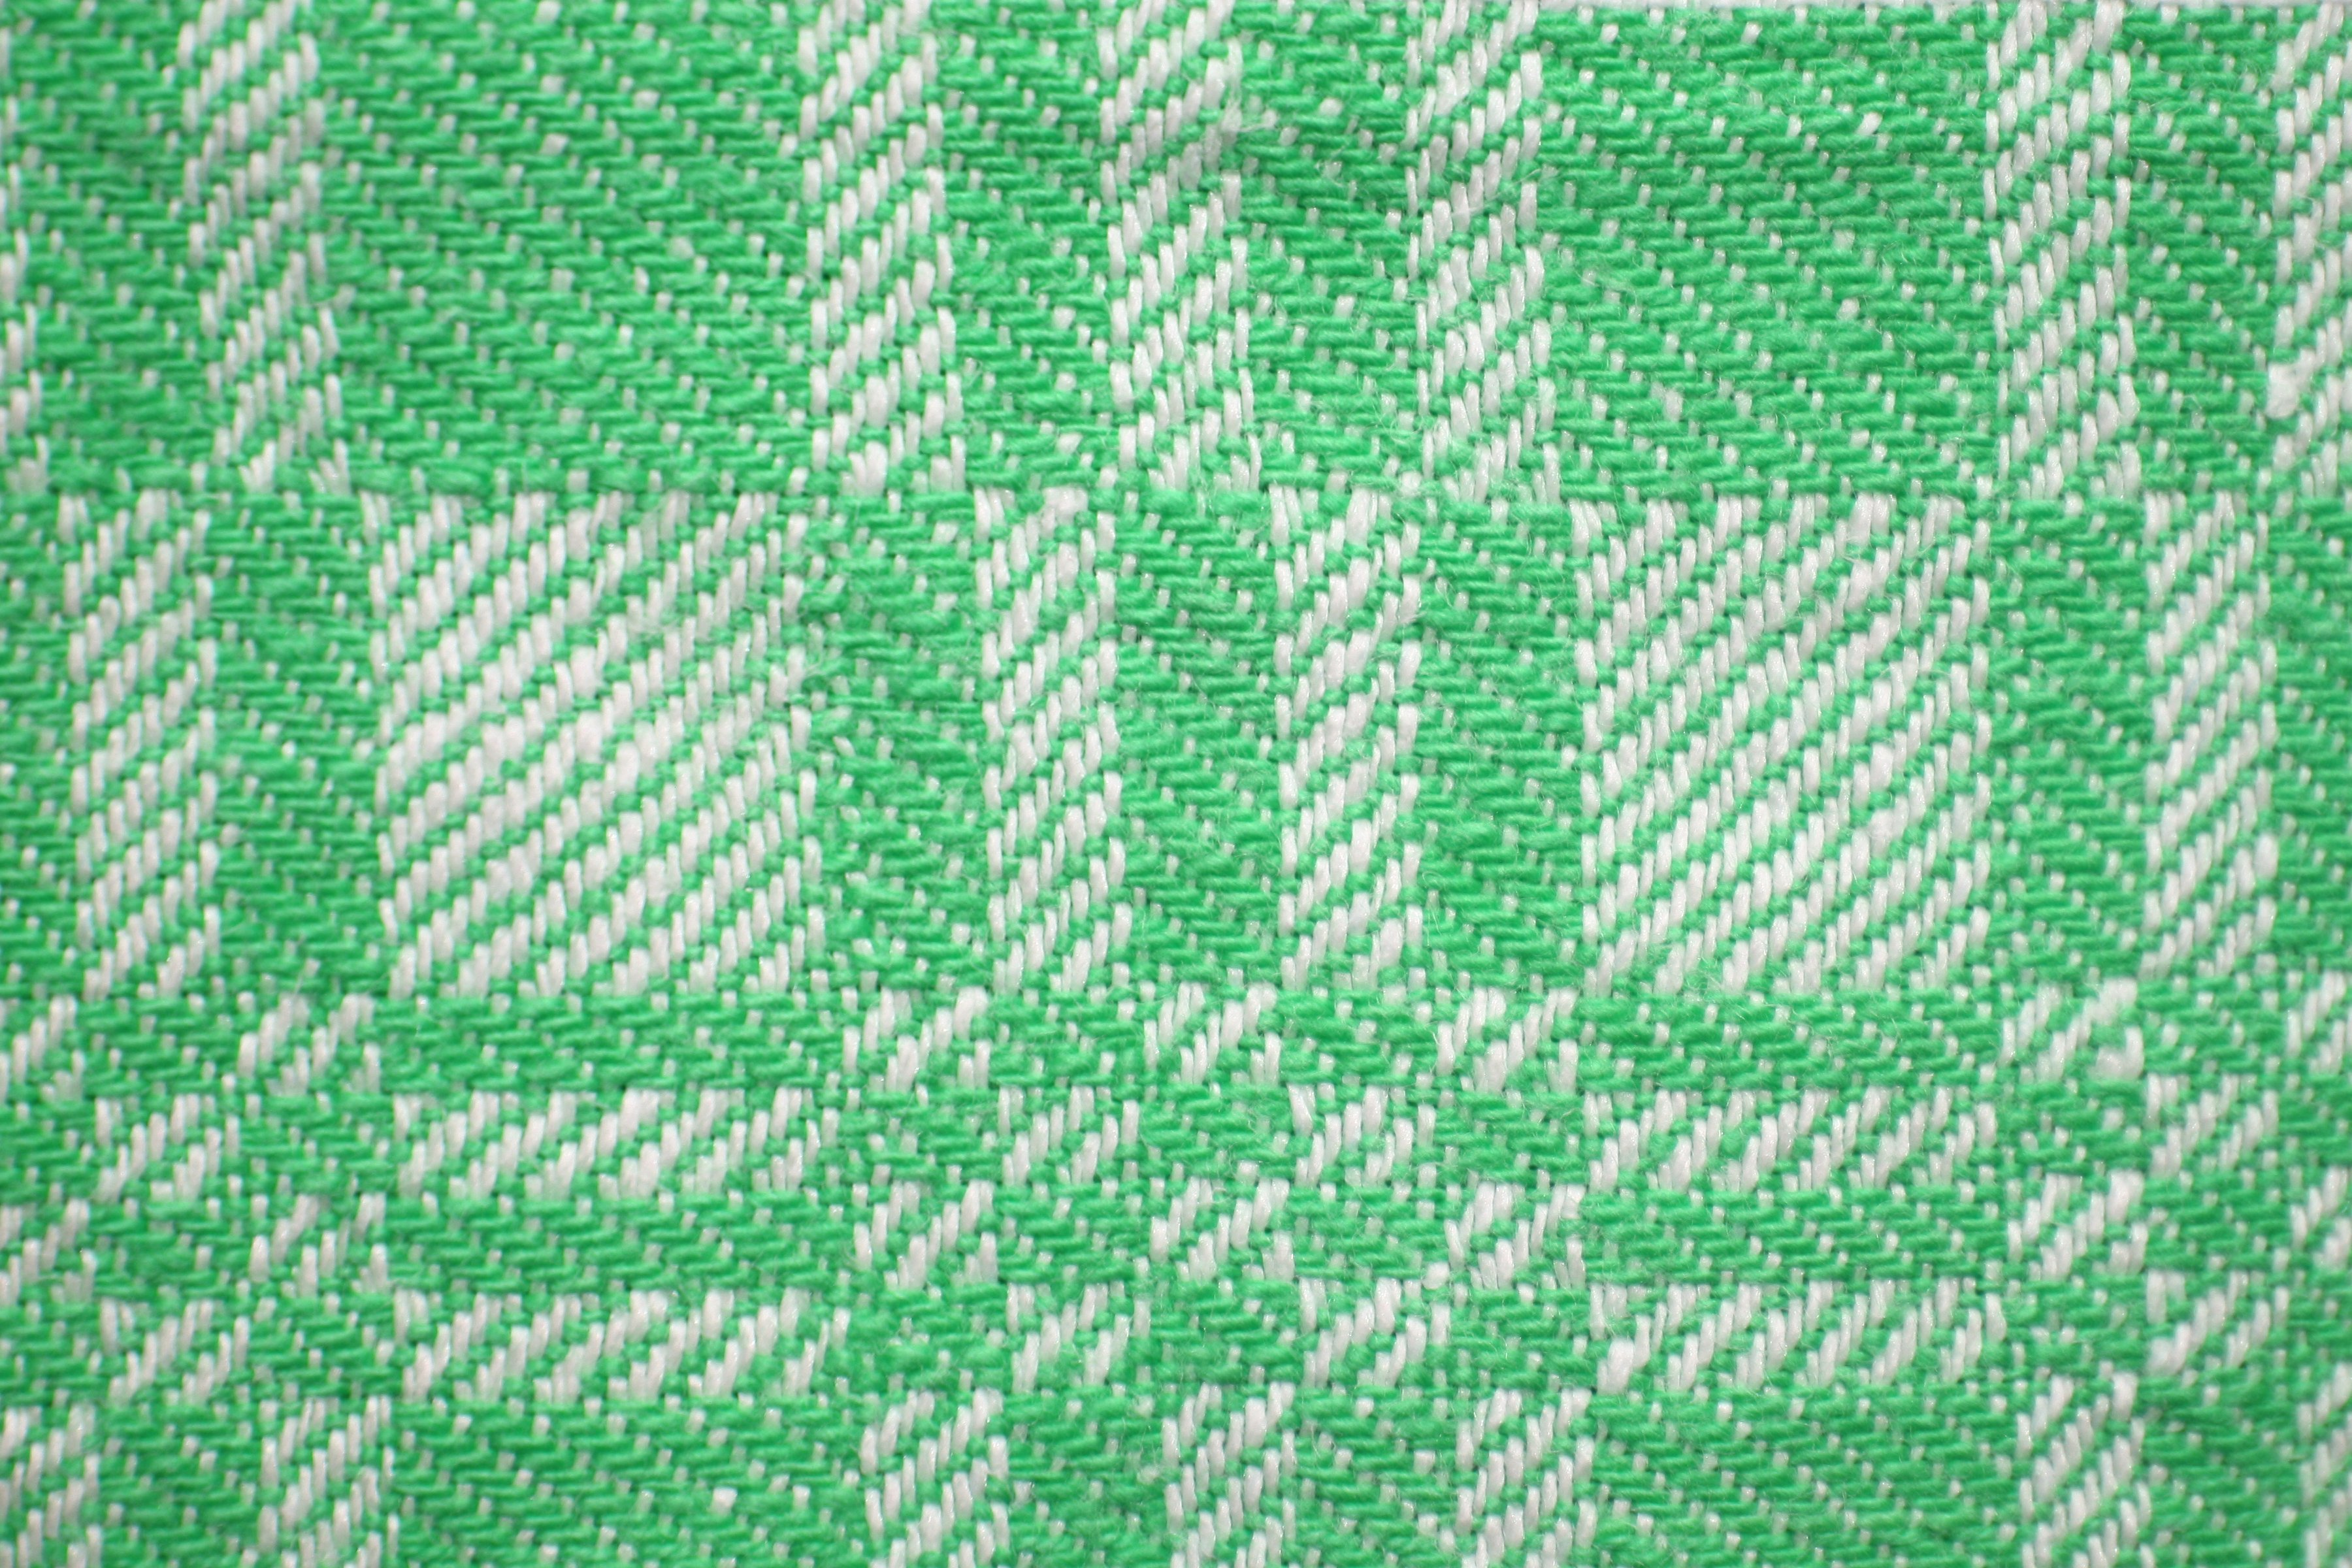 Green And White Woven Fabric Texture With Squares Pattern